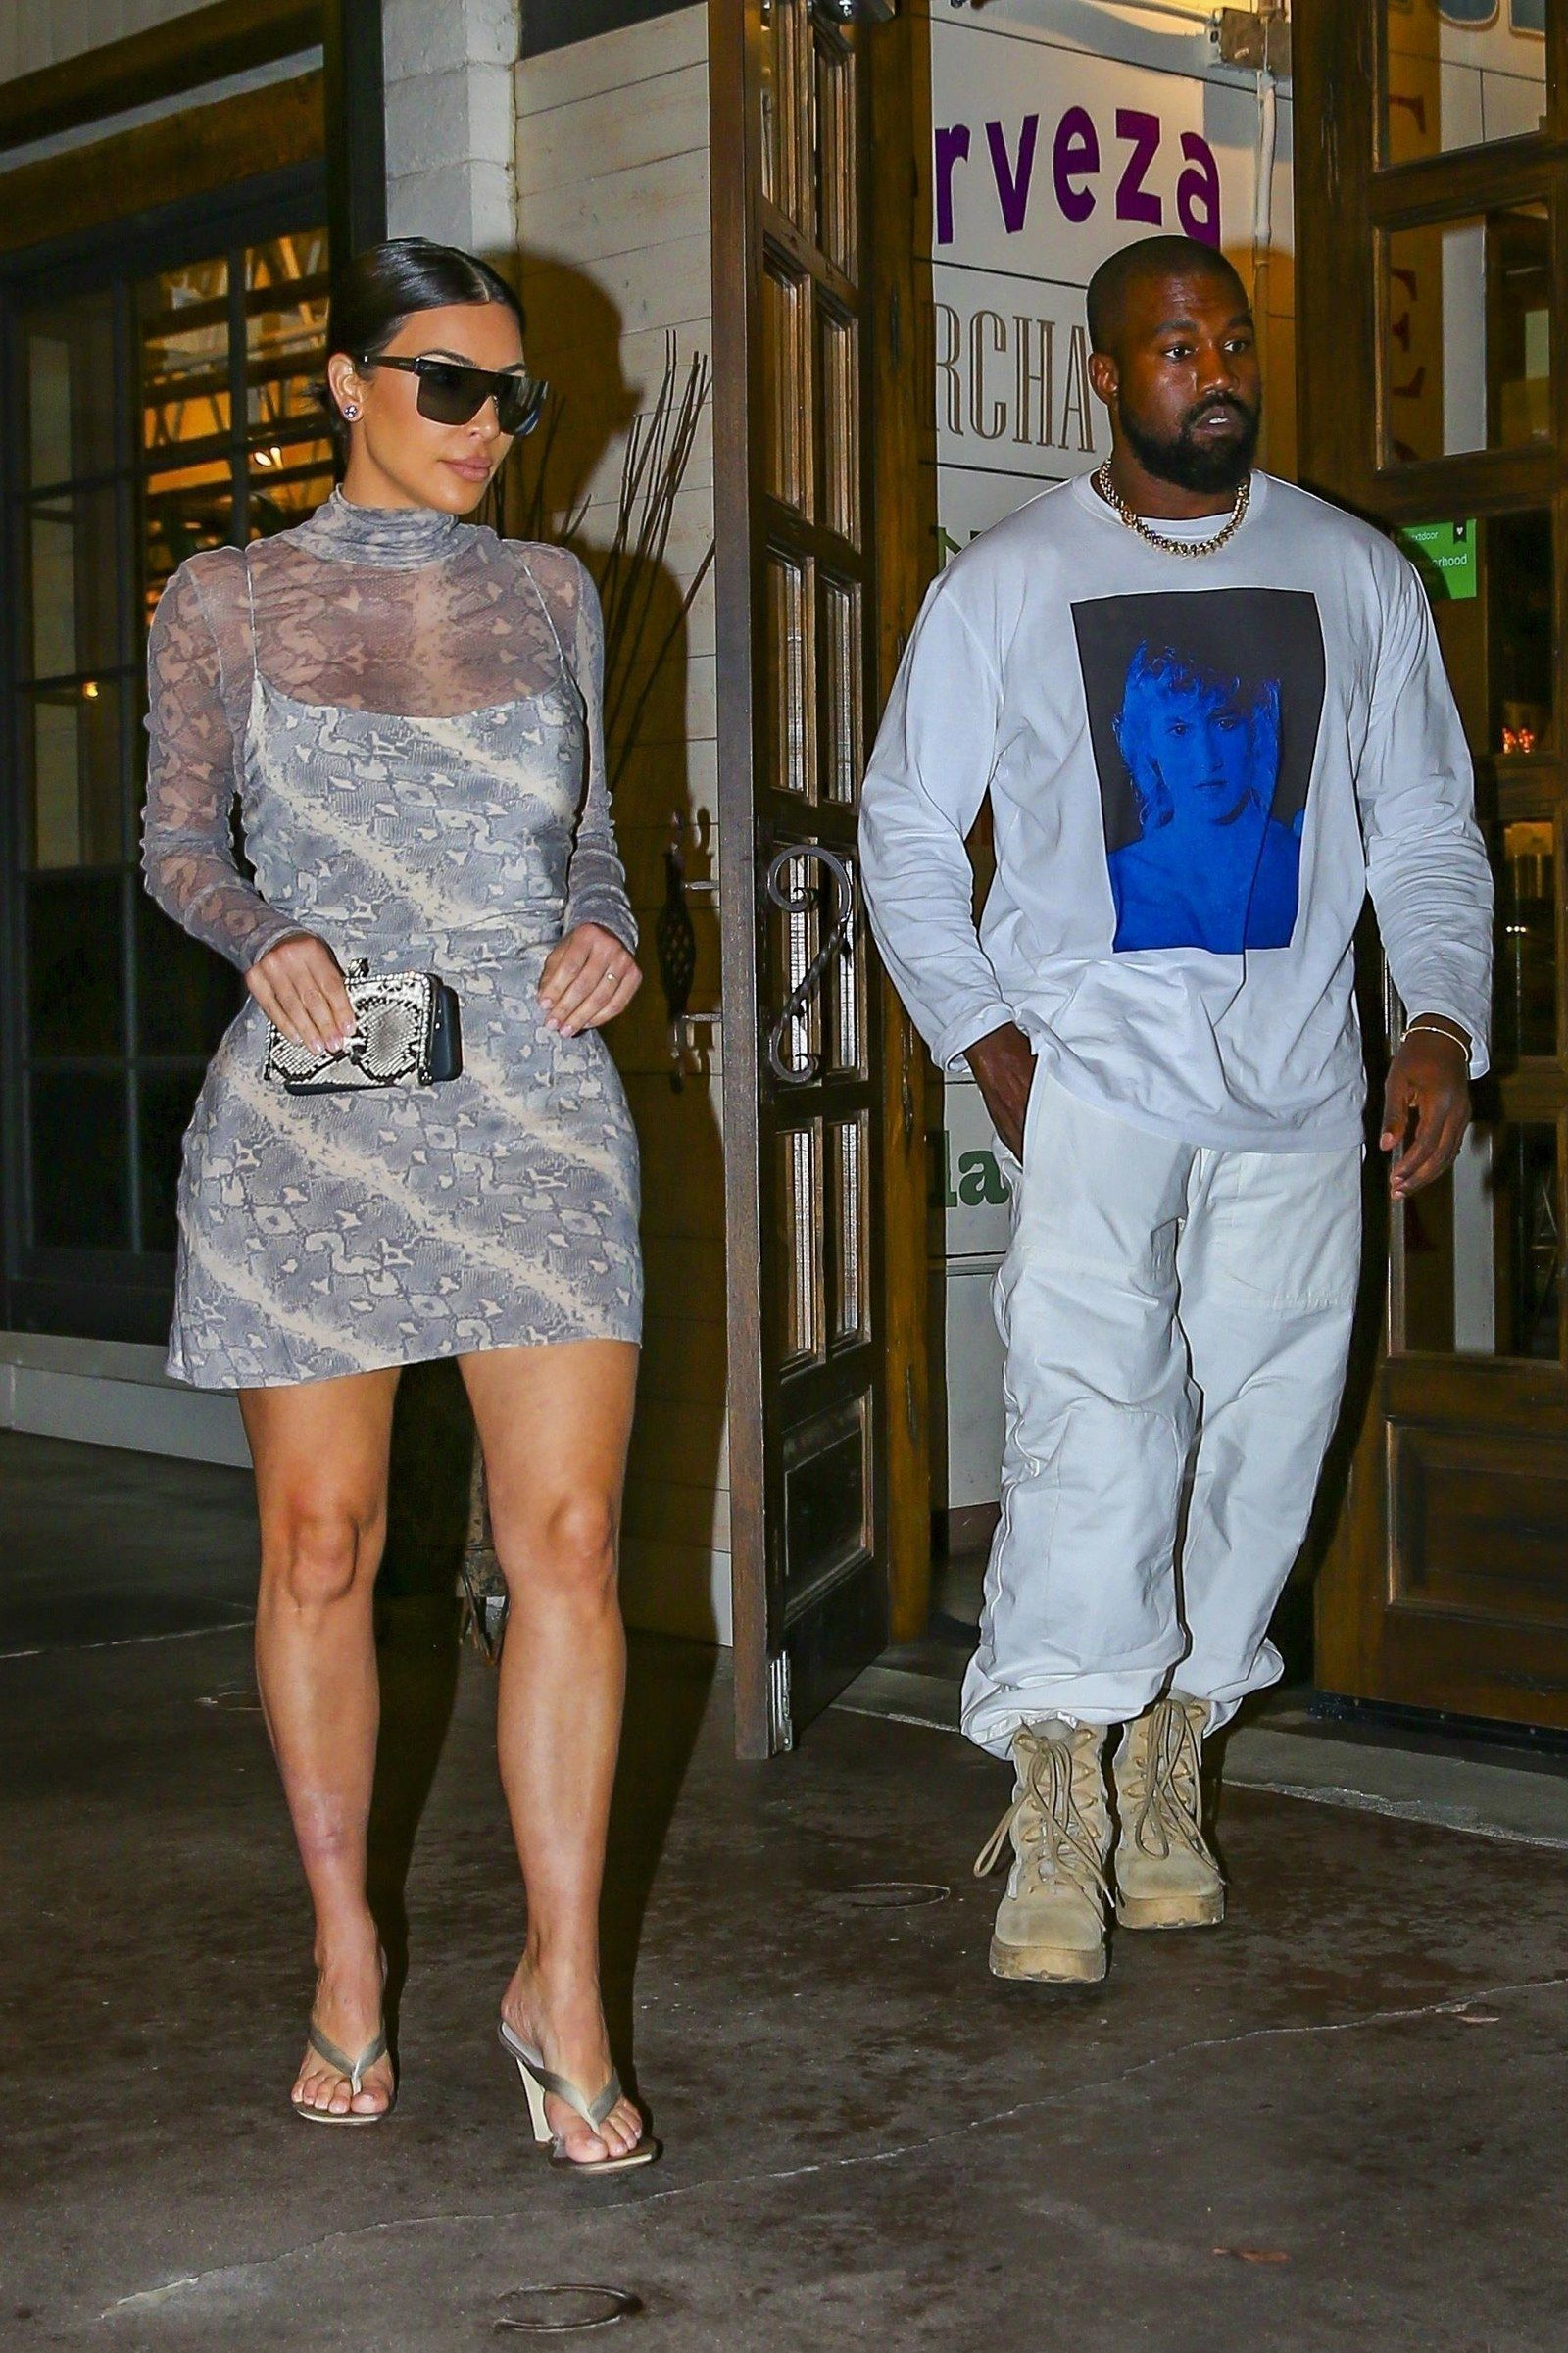 Kim Kardashian And Kanye West Up Their Date Night Style Game Kim Kardashian And Kanye West Up Their Date Night In 2020 Fashion Kim Kardashian Outfits Kim Kardashian